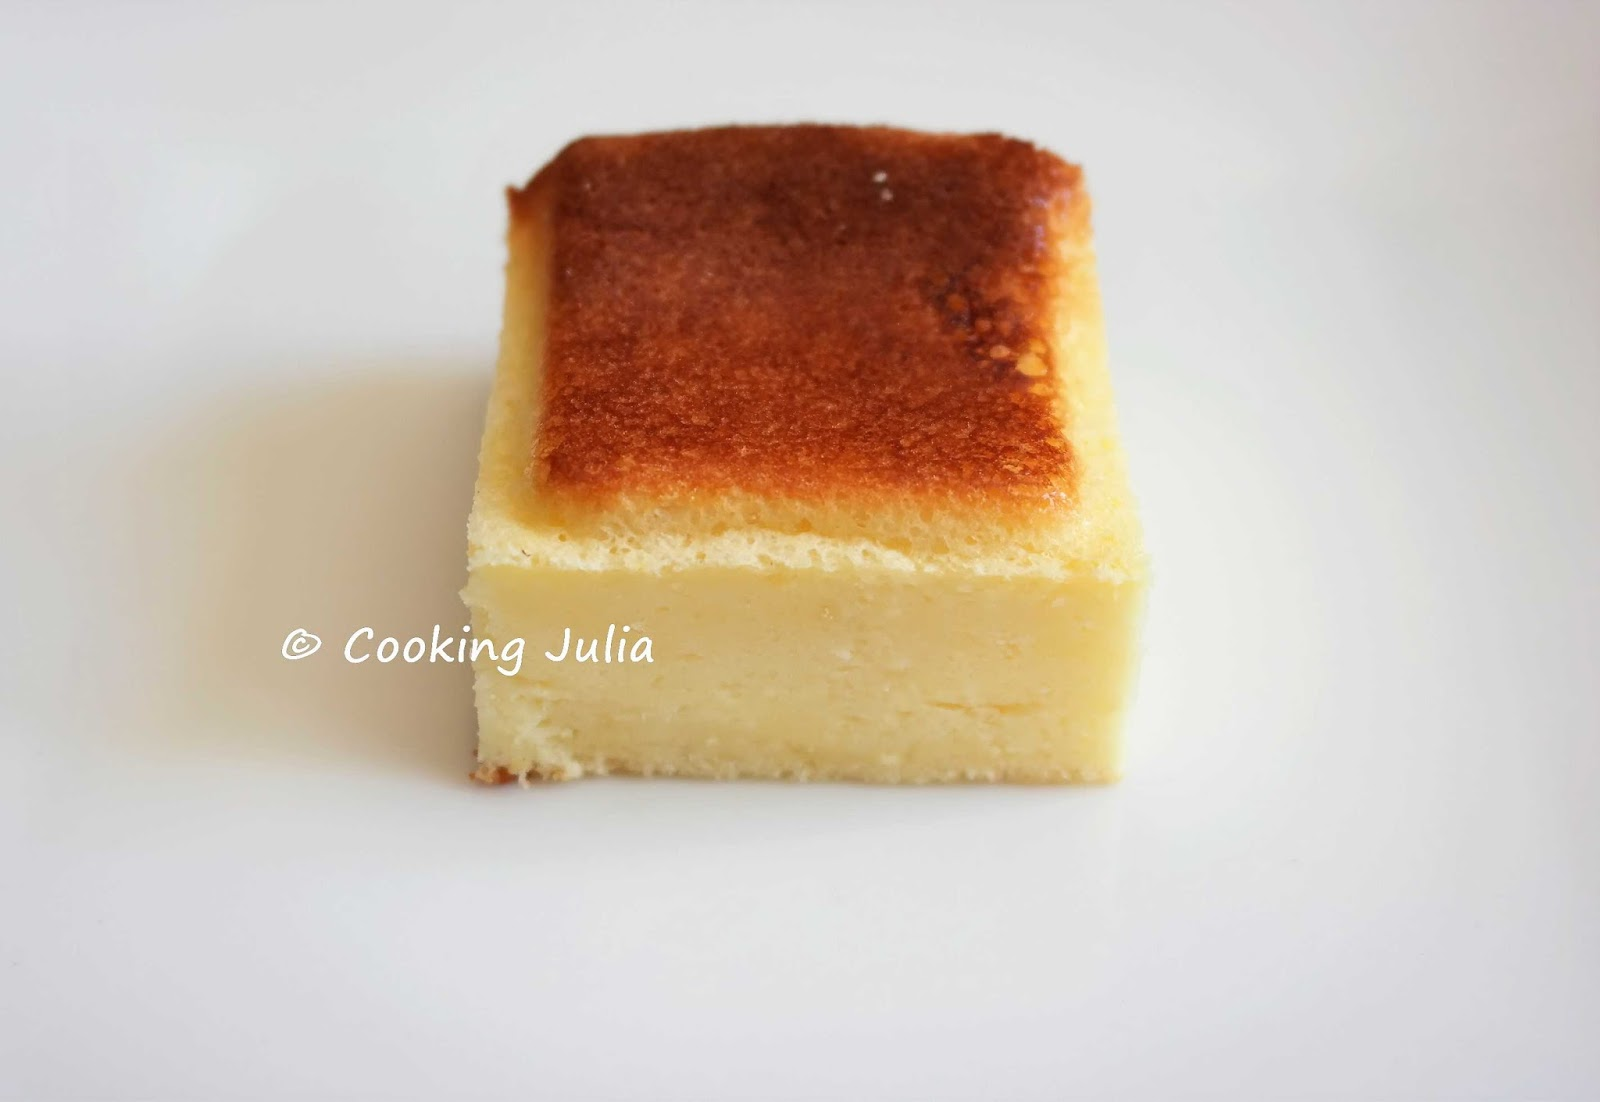 Cooking Julia Gateau Leger Au Fromage Blanc